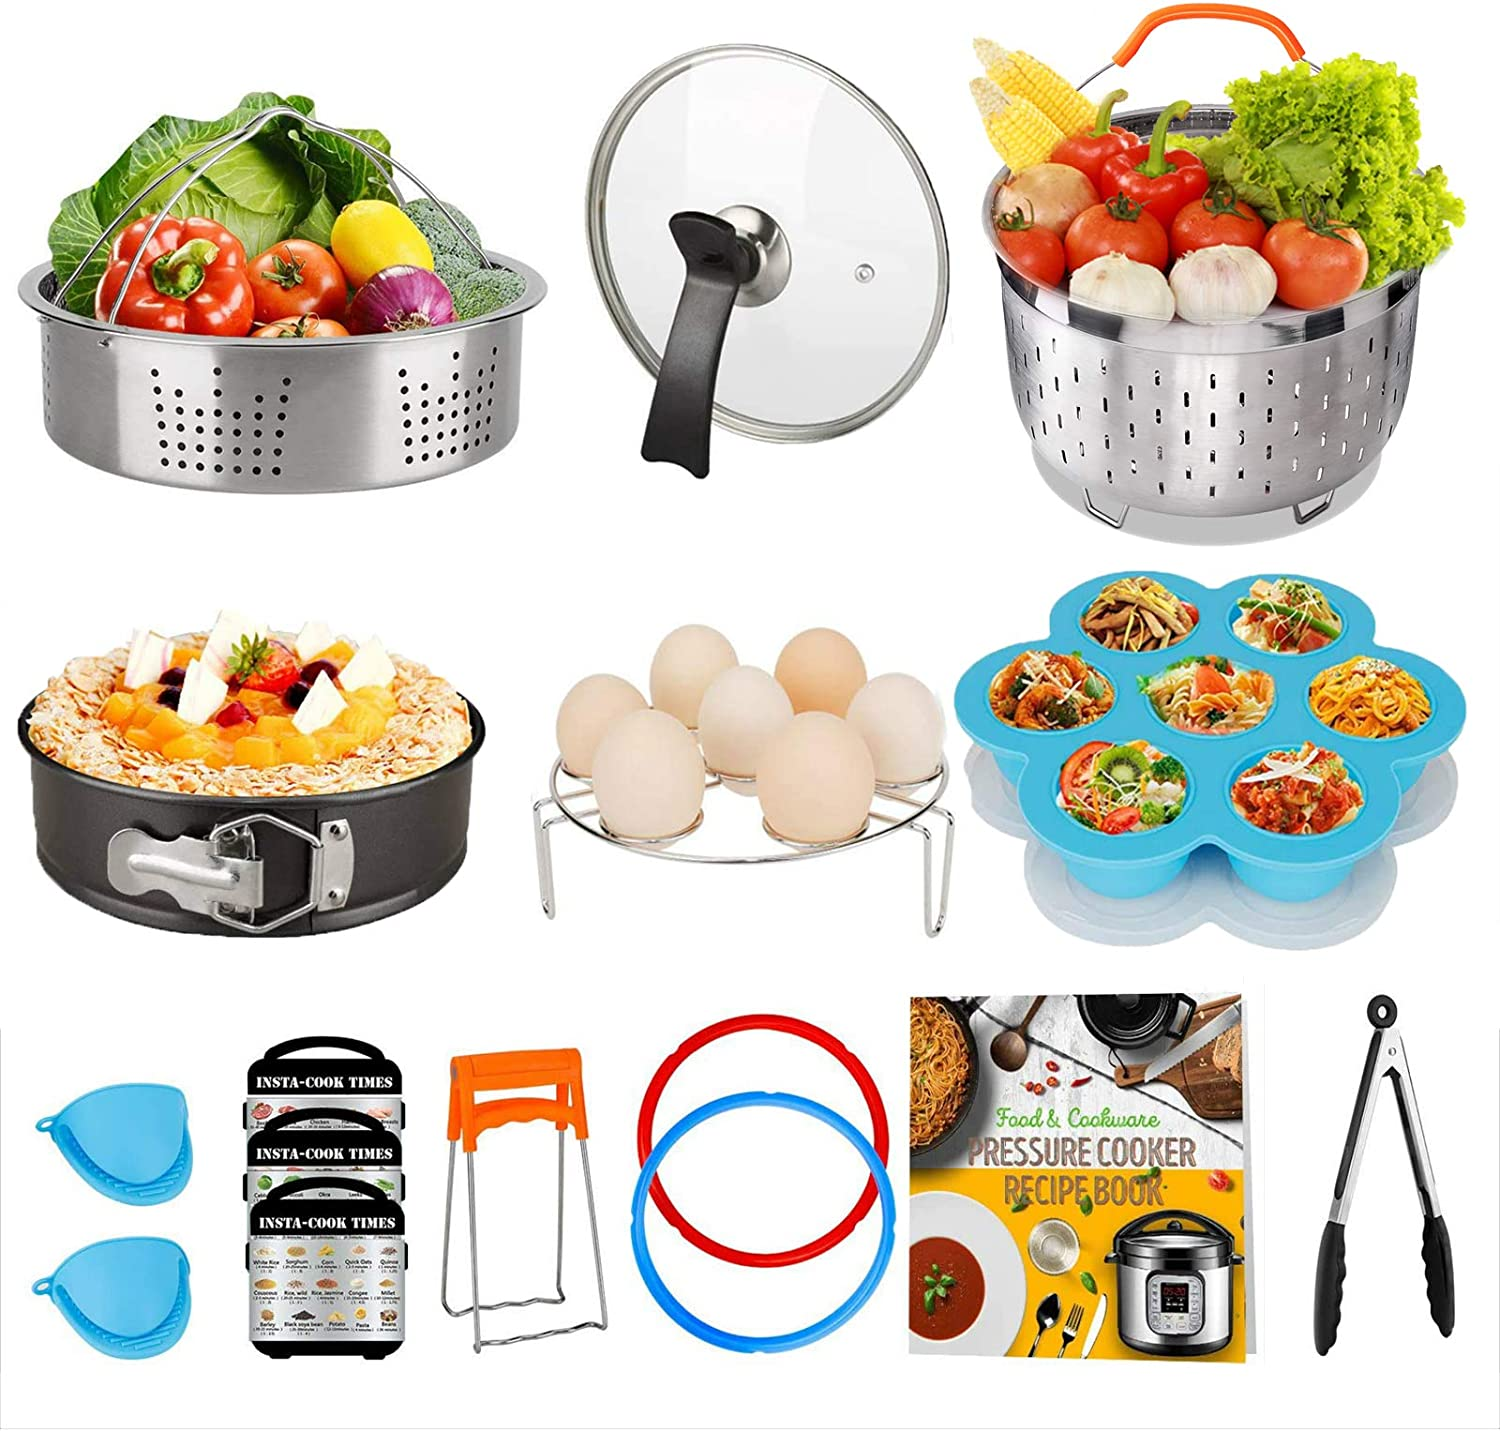 Cooking Accessories Set Compatible with Instant Pot 8 QT, 8 Quart Accessory Kit with 2 Baskets Glass Lid Silicone Sealing Rings Springform Pan Cookbook